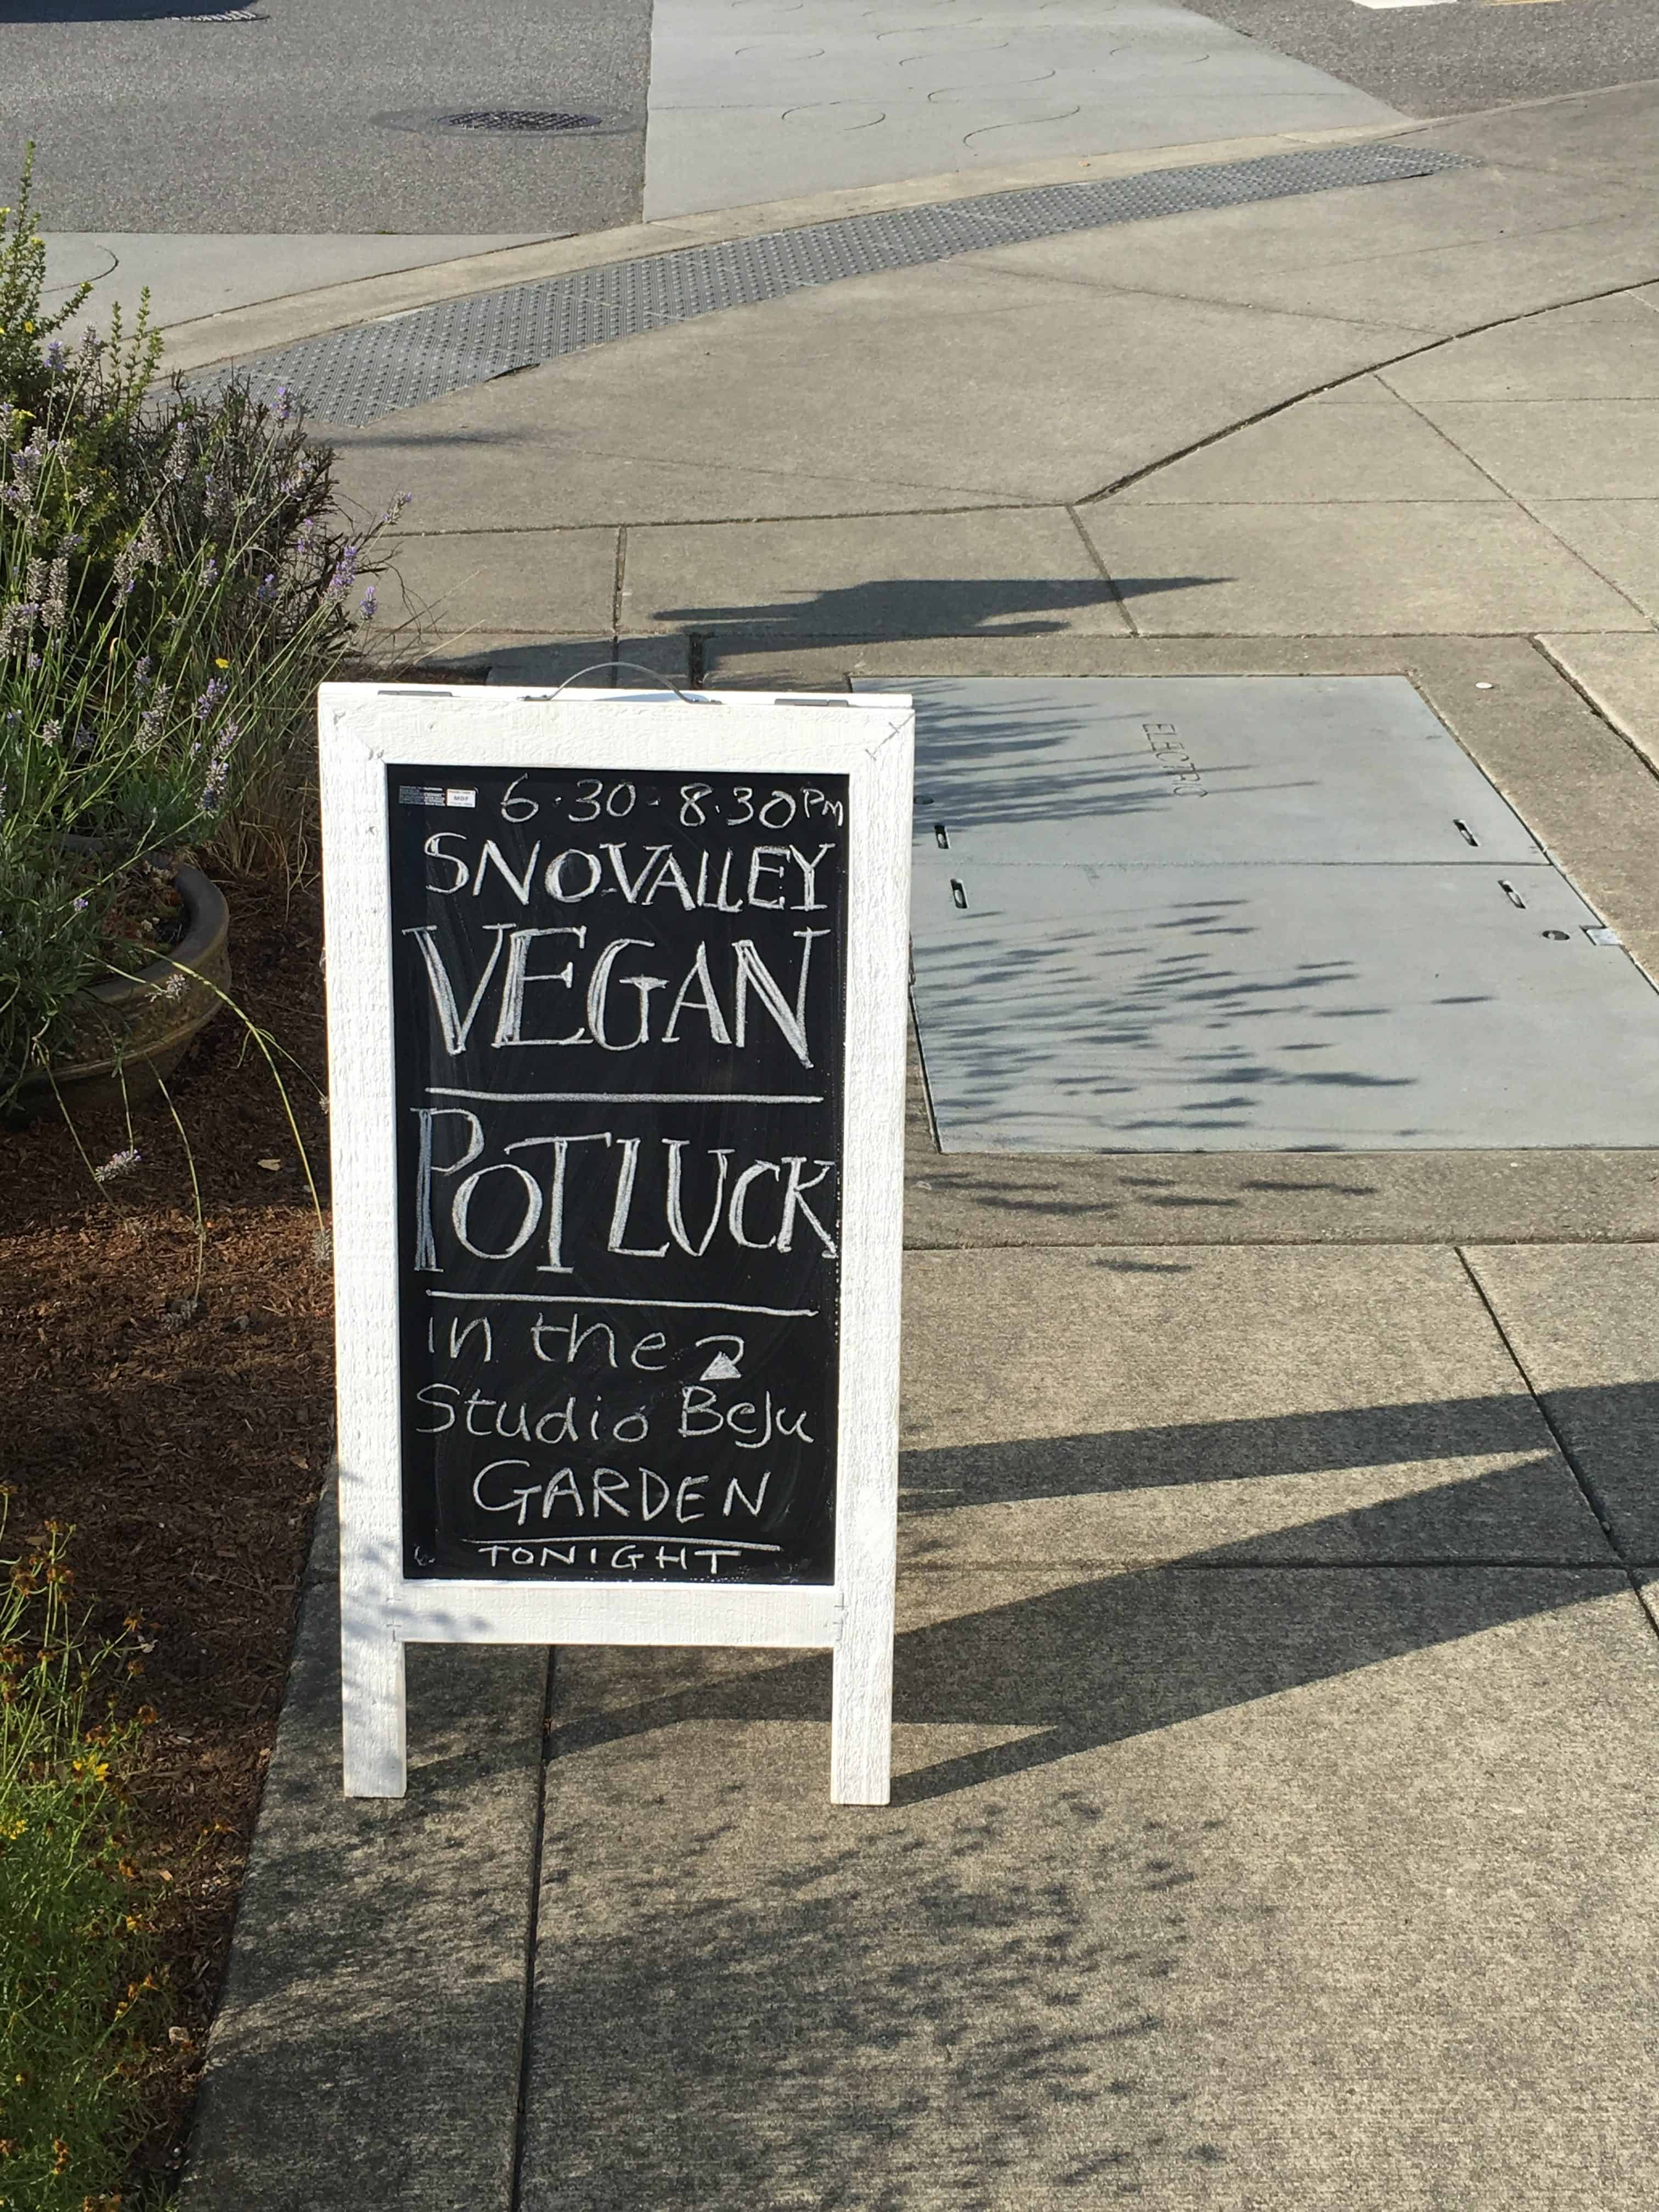 Photo of an A-Board sign on a sidewalk indicating the Sno-Valley Vegan Potluck in the Studio Beju garden. https://trimazing.com